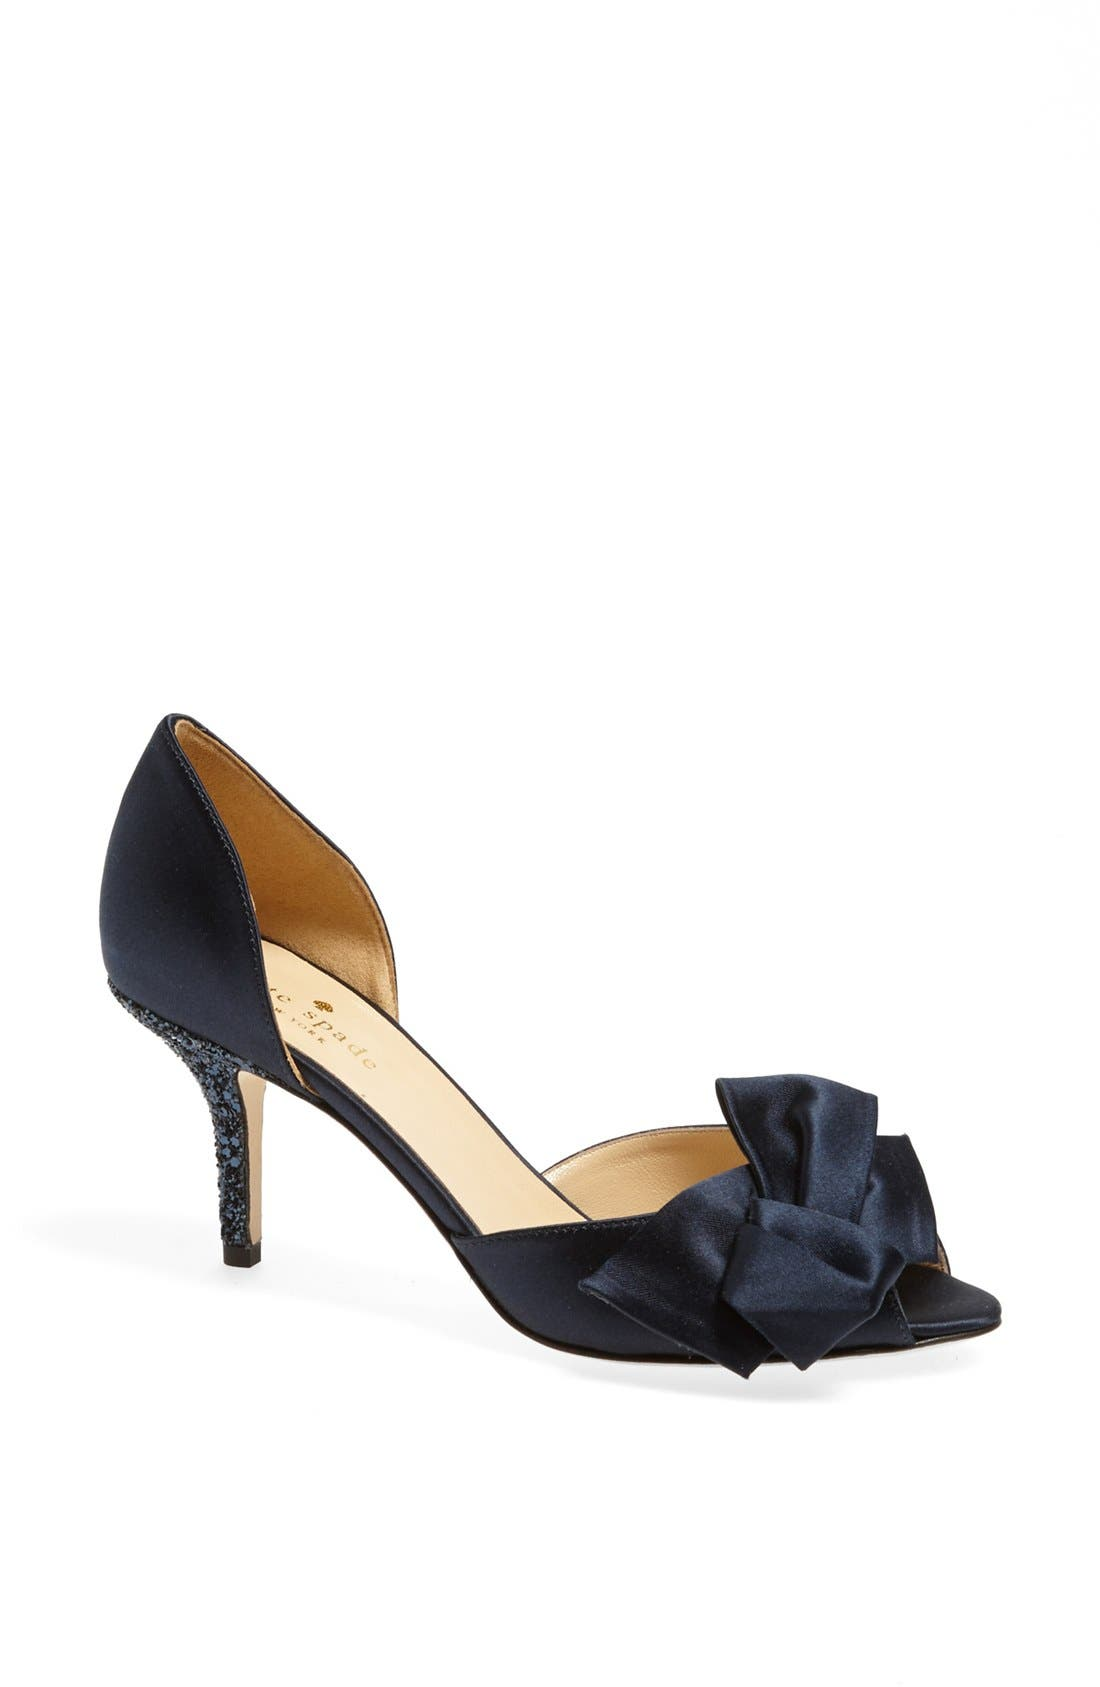 KATE SPADE NEW YORK 'sala' pump